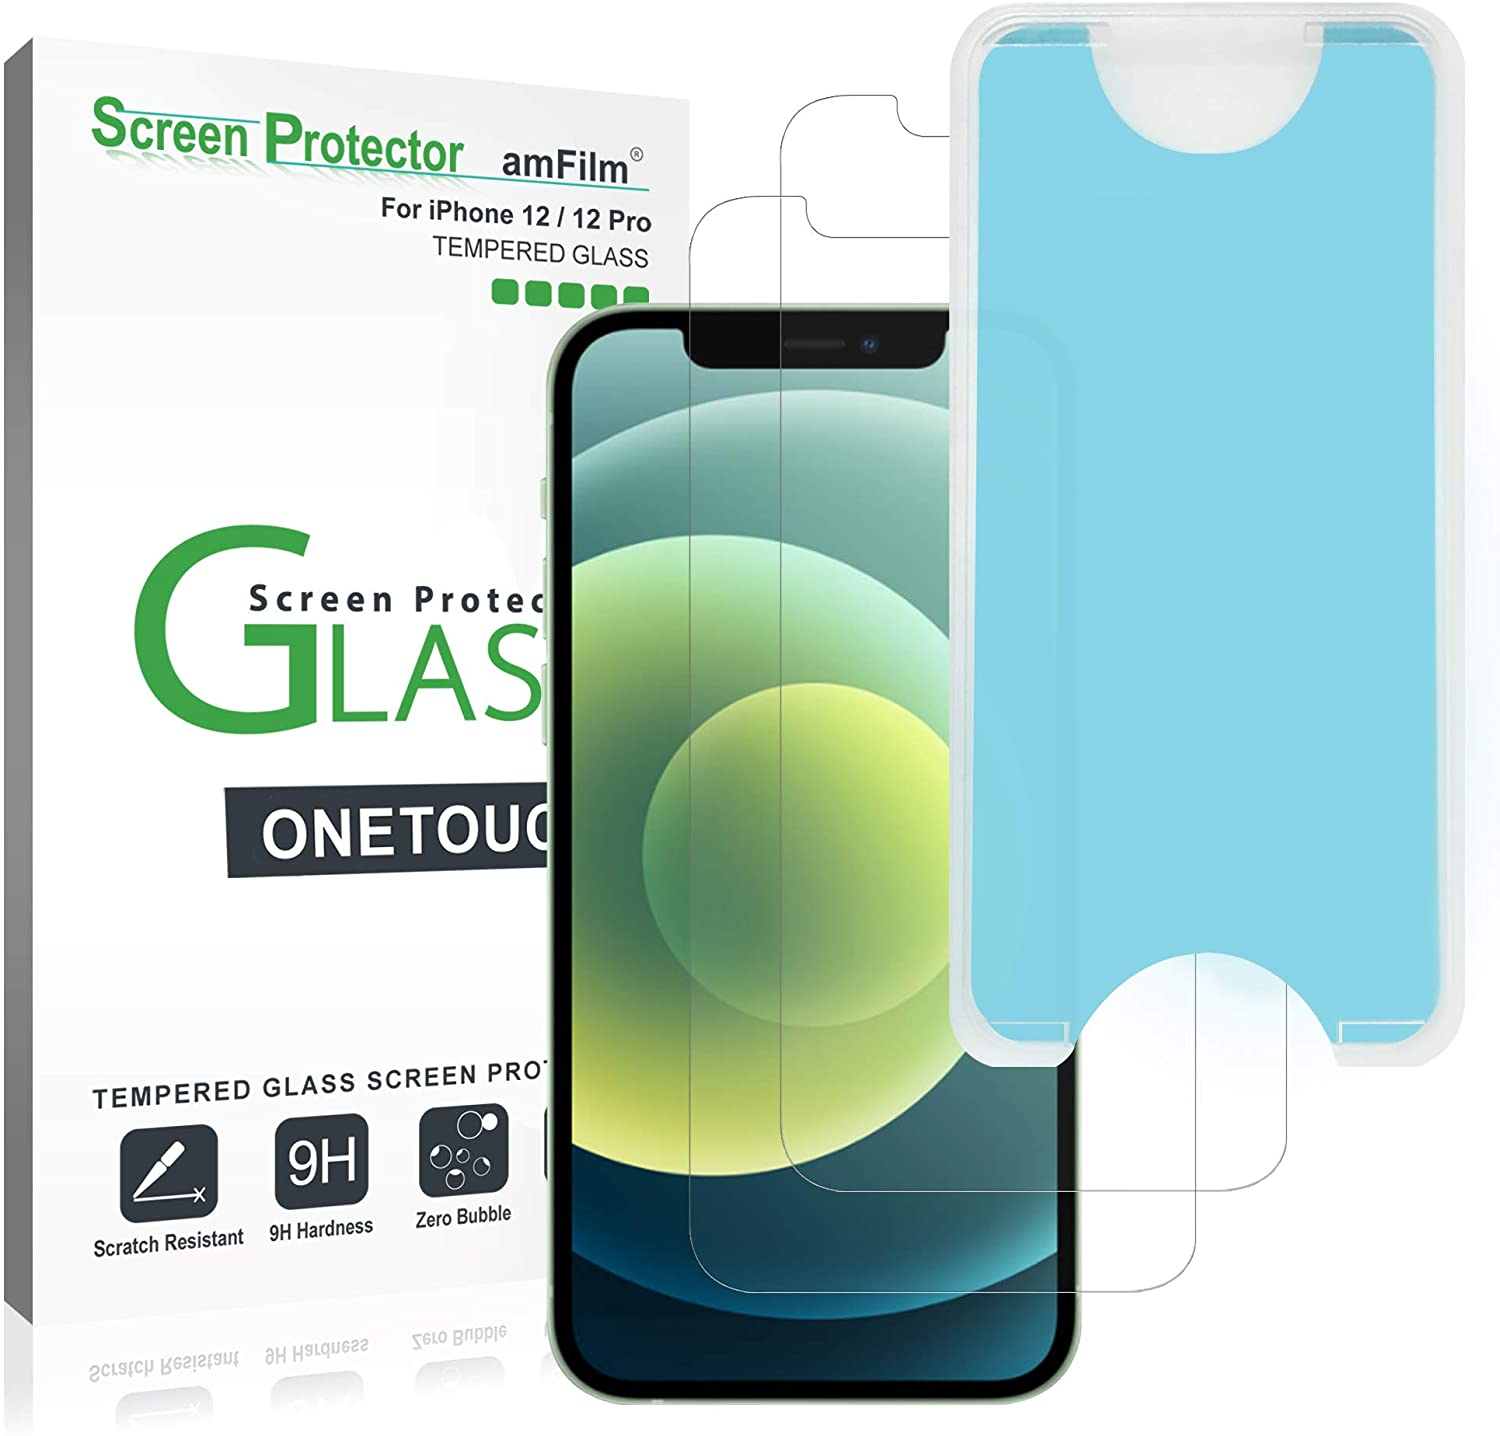 amFilm OneTouch Glass Screen Protector